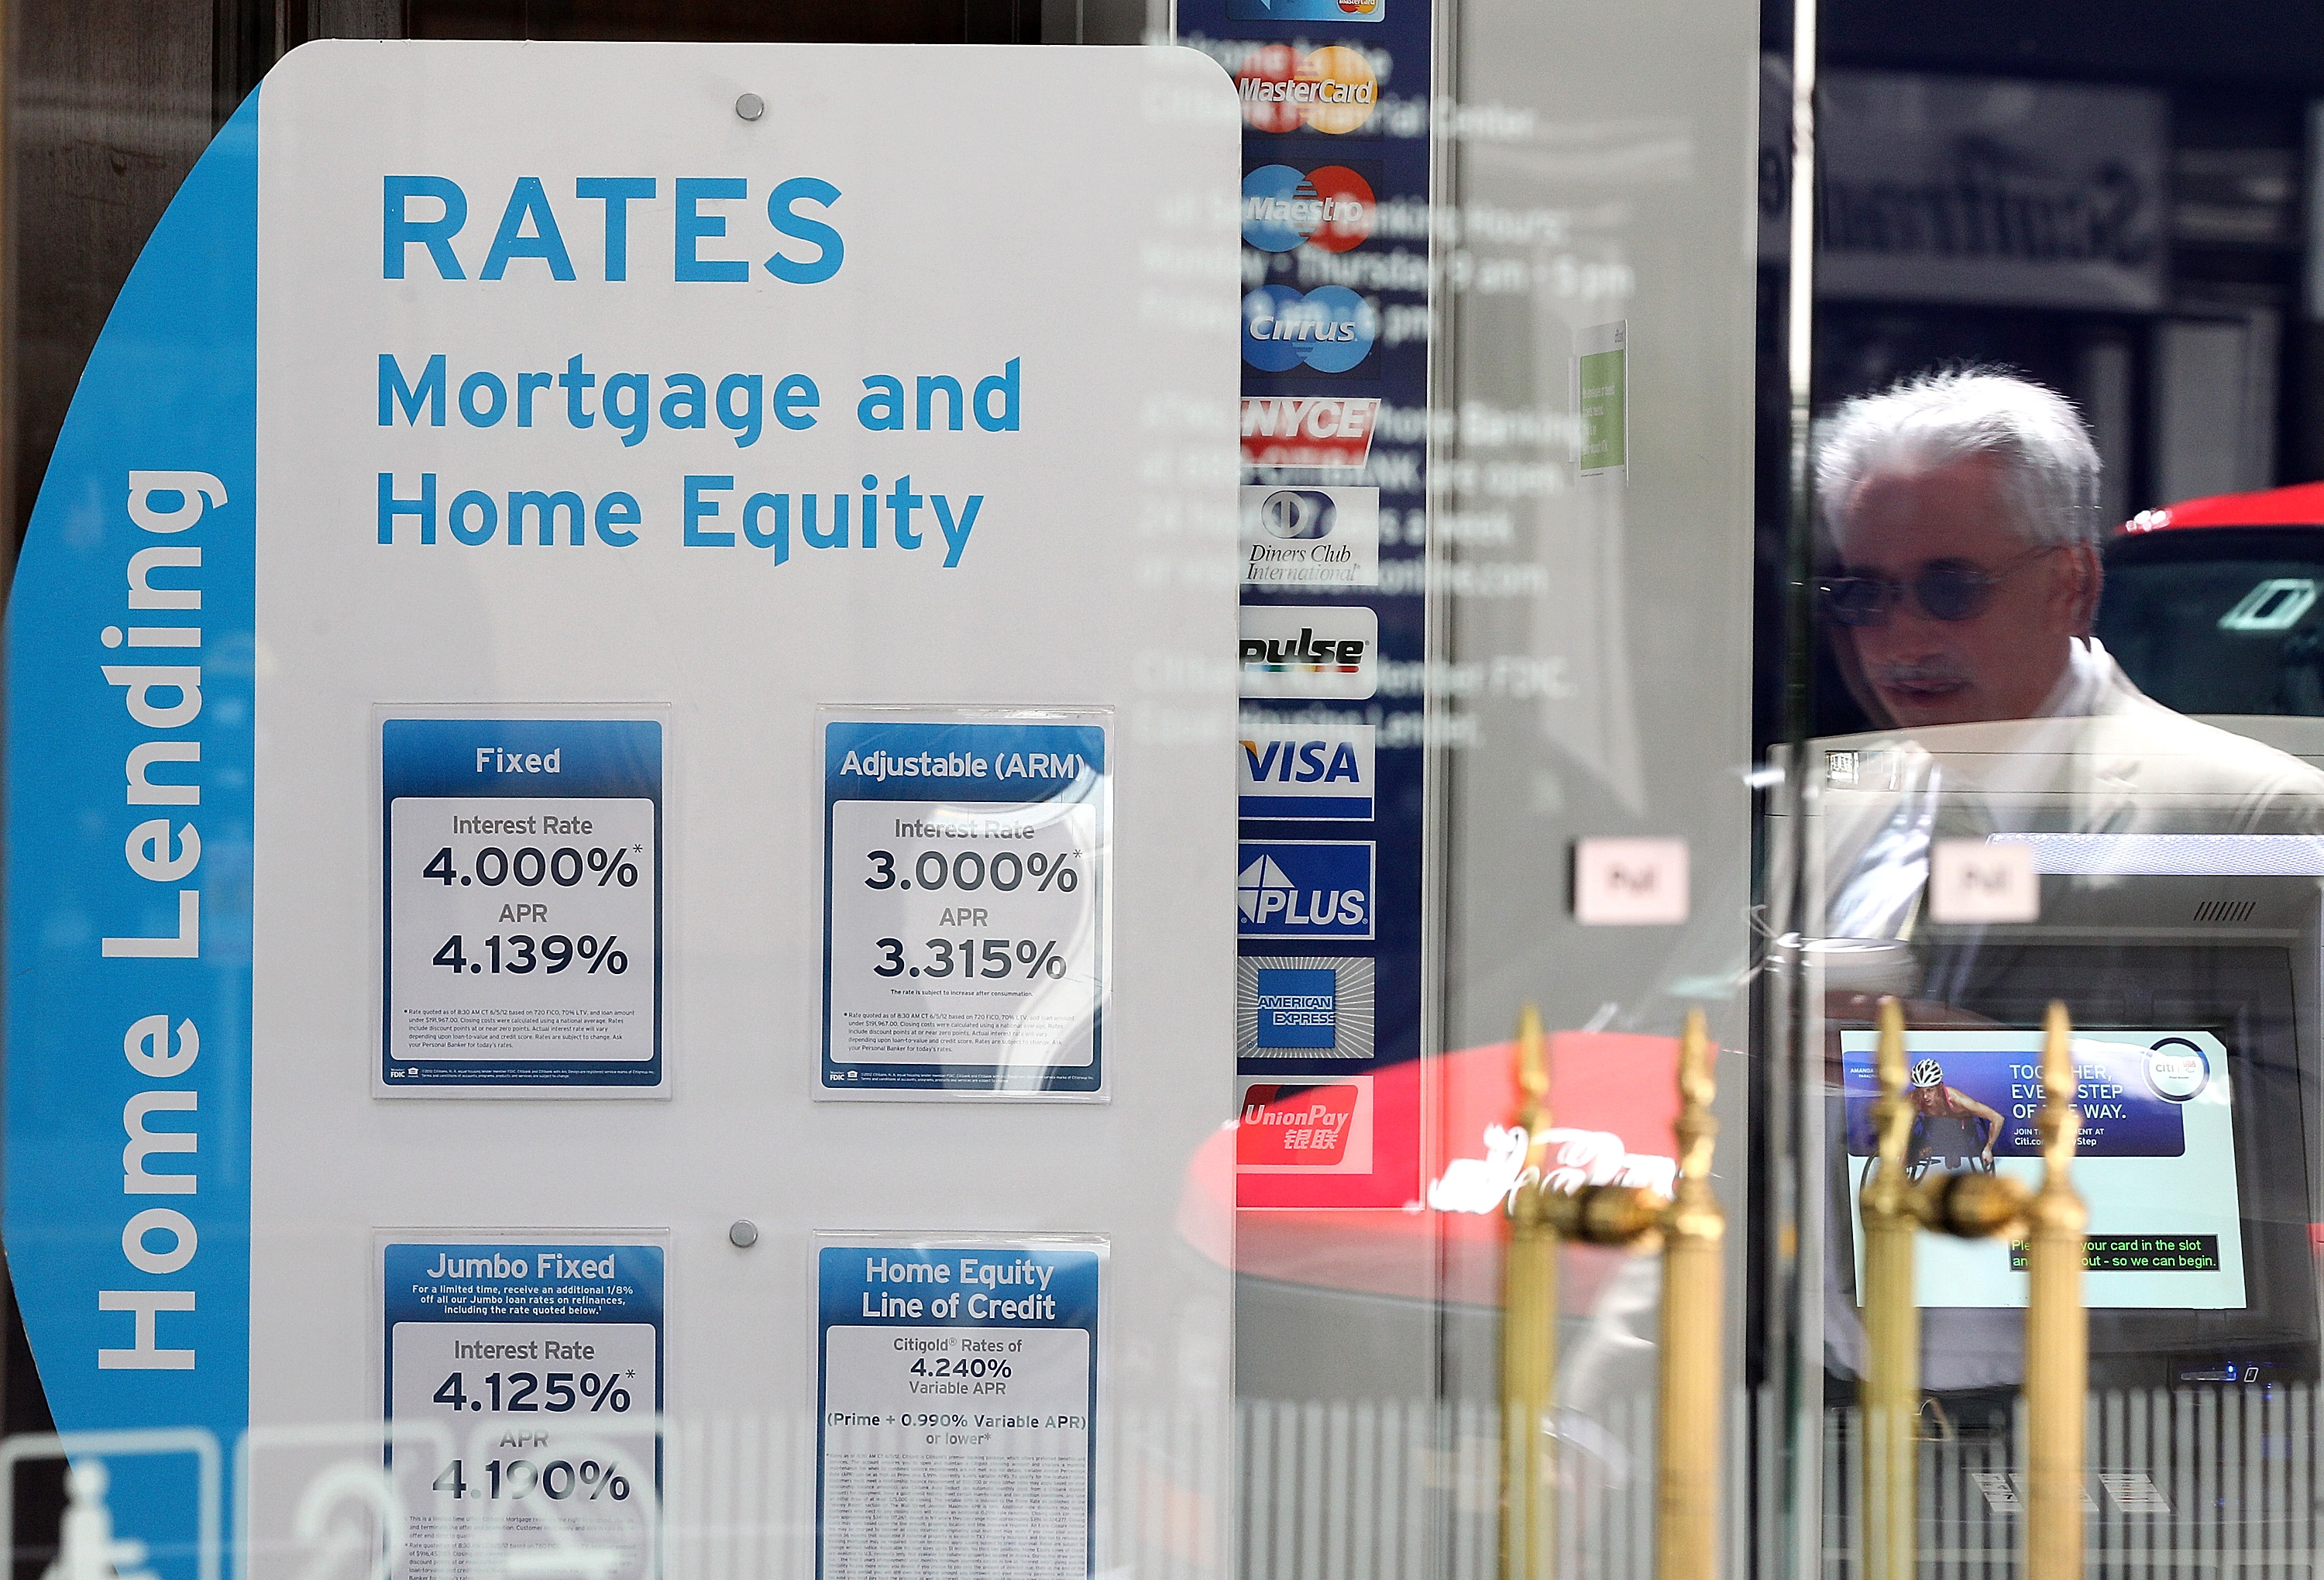 Long Term Mortgage Rates Fall To Historic Lows